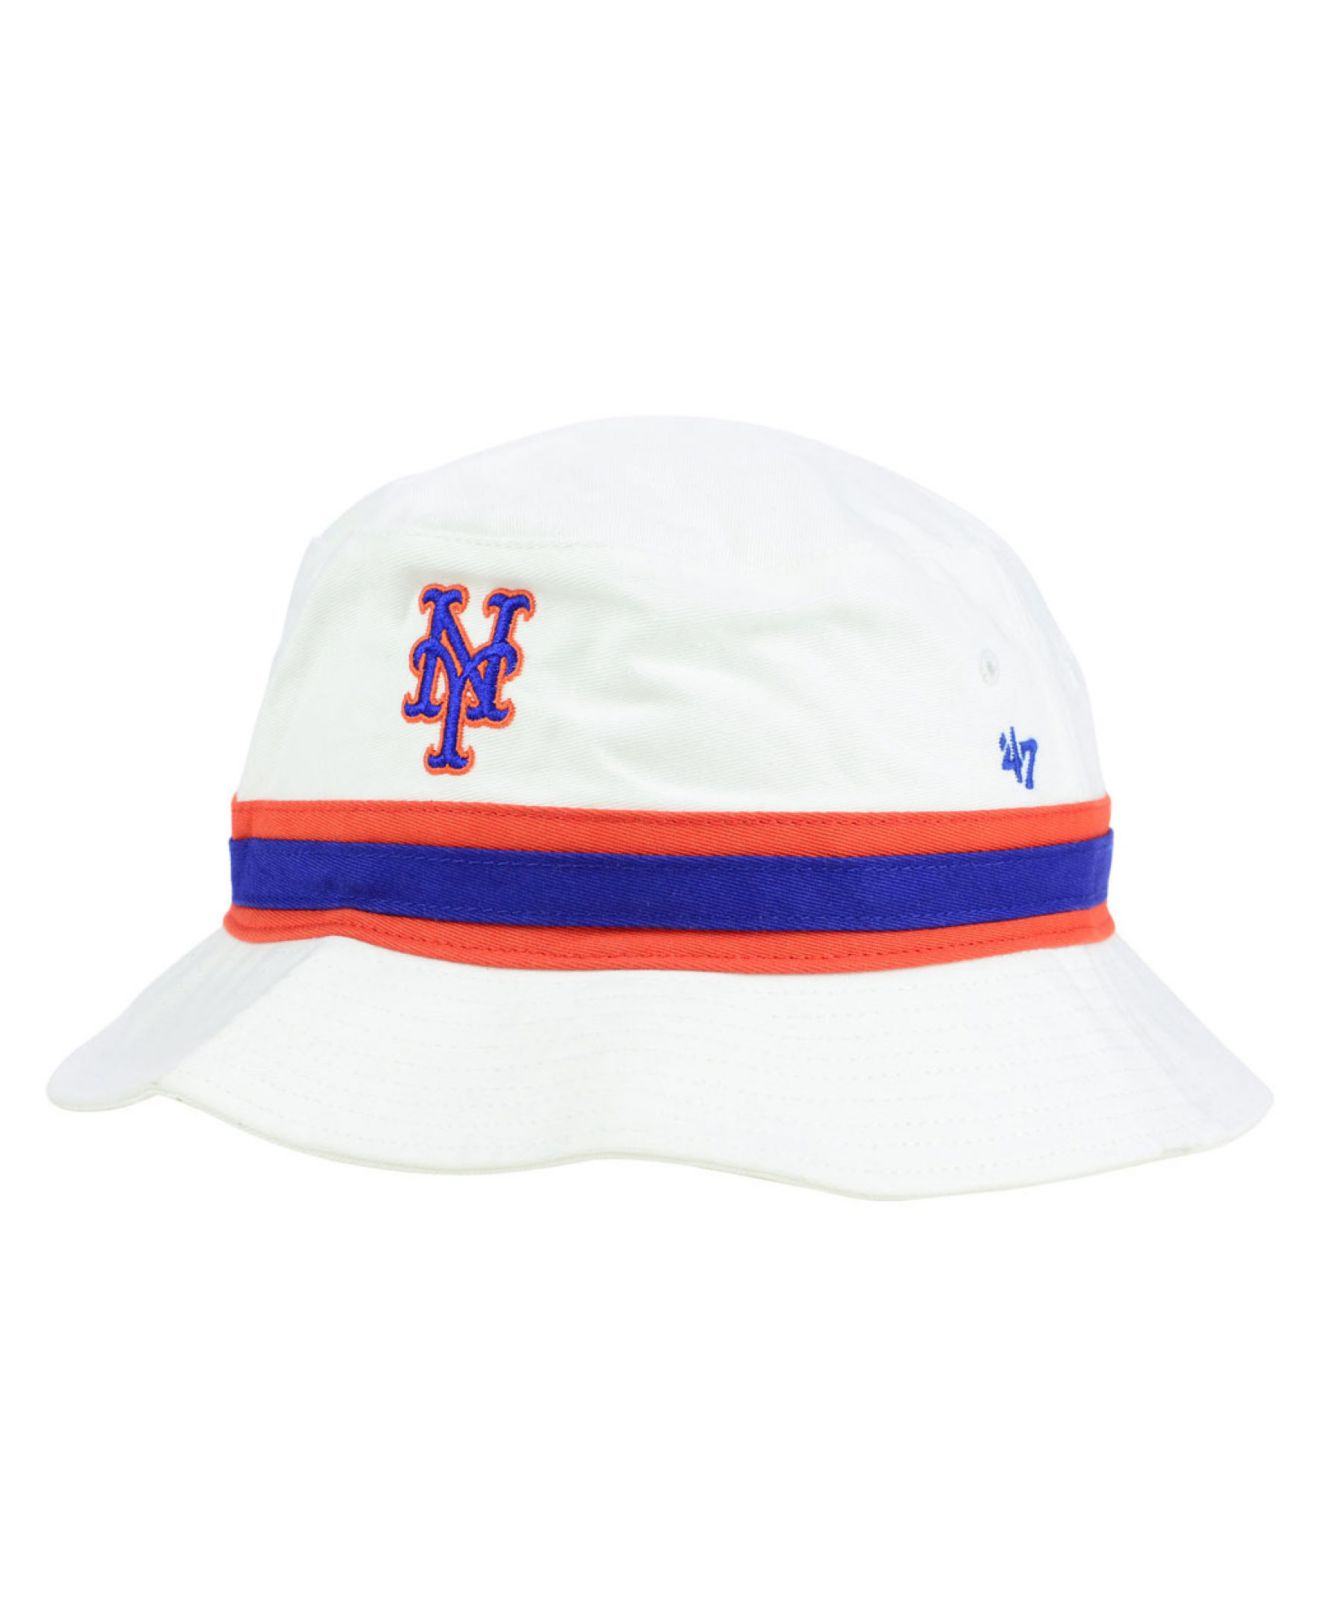 6ebc3e16f655d 47 Brand New York Mets Striped Bucket Hat in White - Lyst